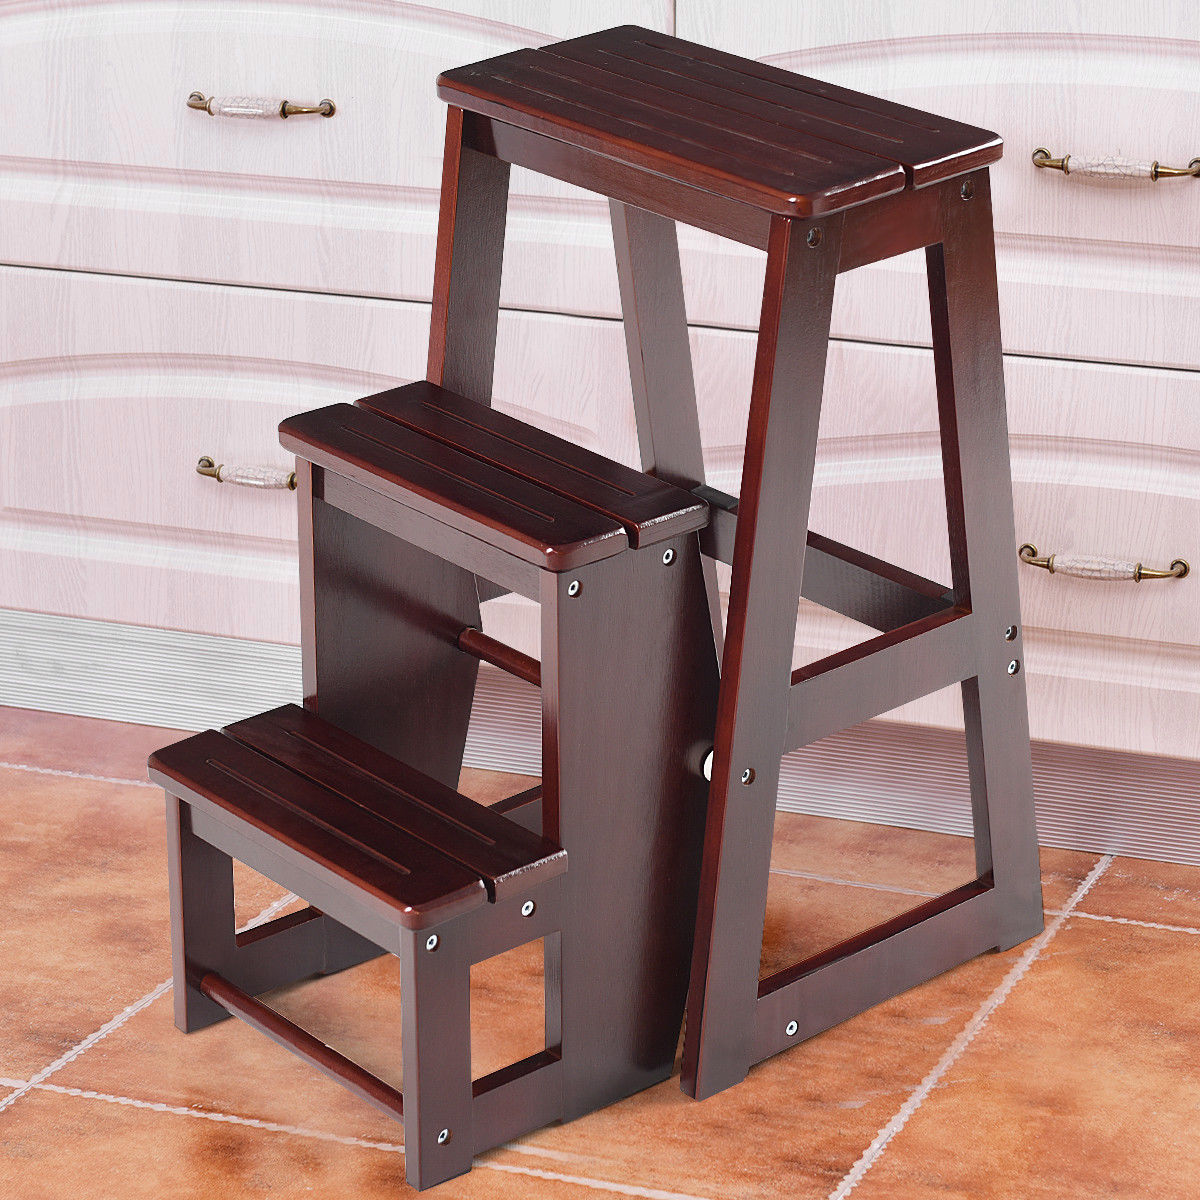 Wooden Step Stool Chair Costway Wood Step Stool Folding 3 Tier Ladder Chair Bench